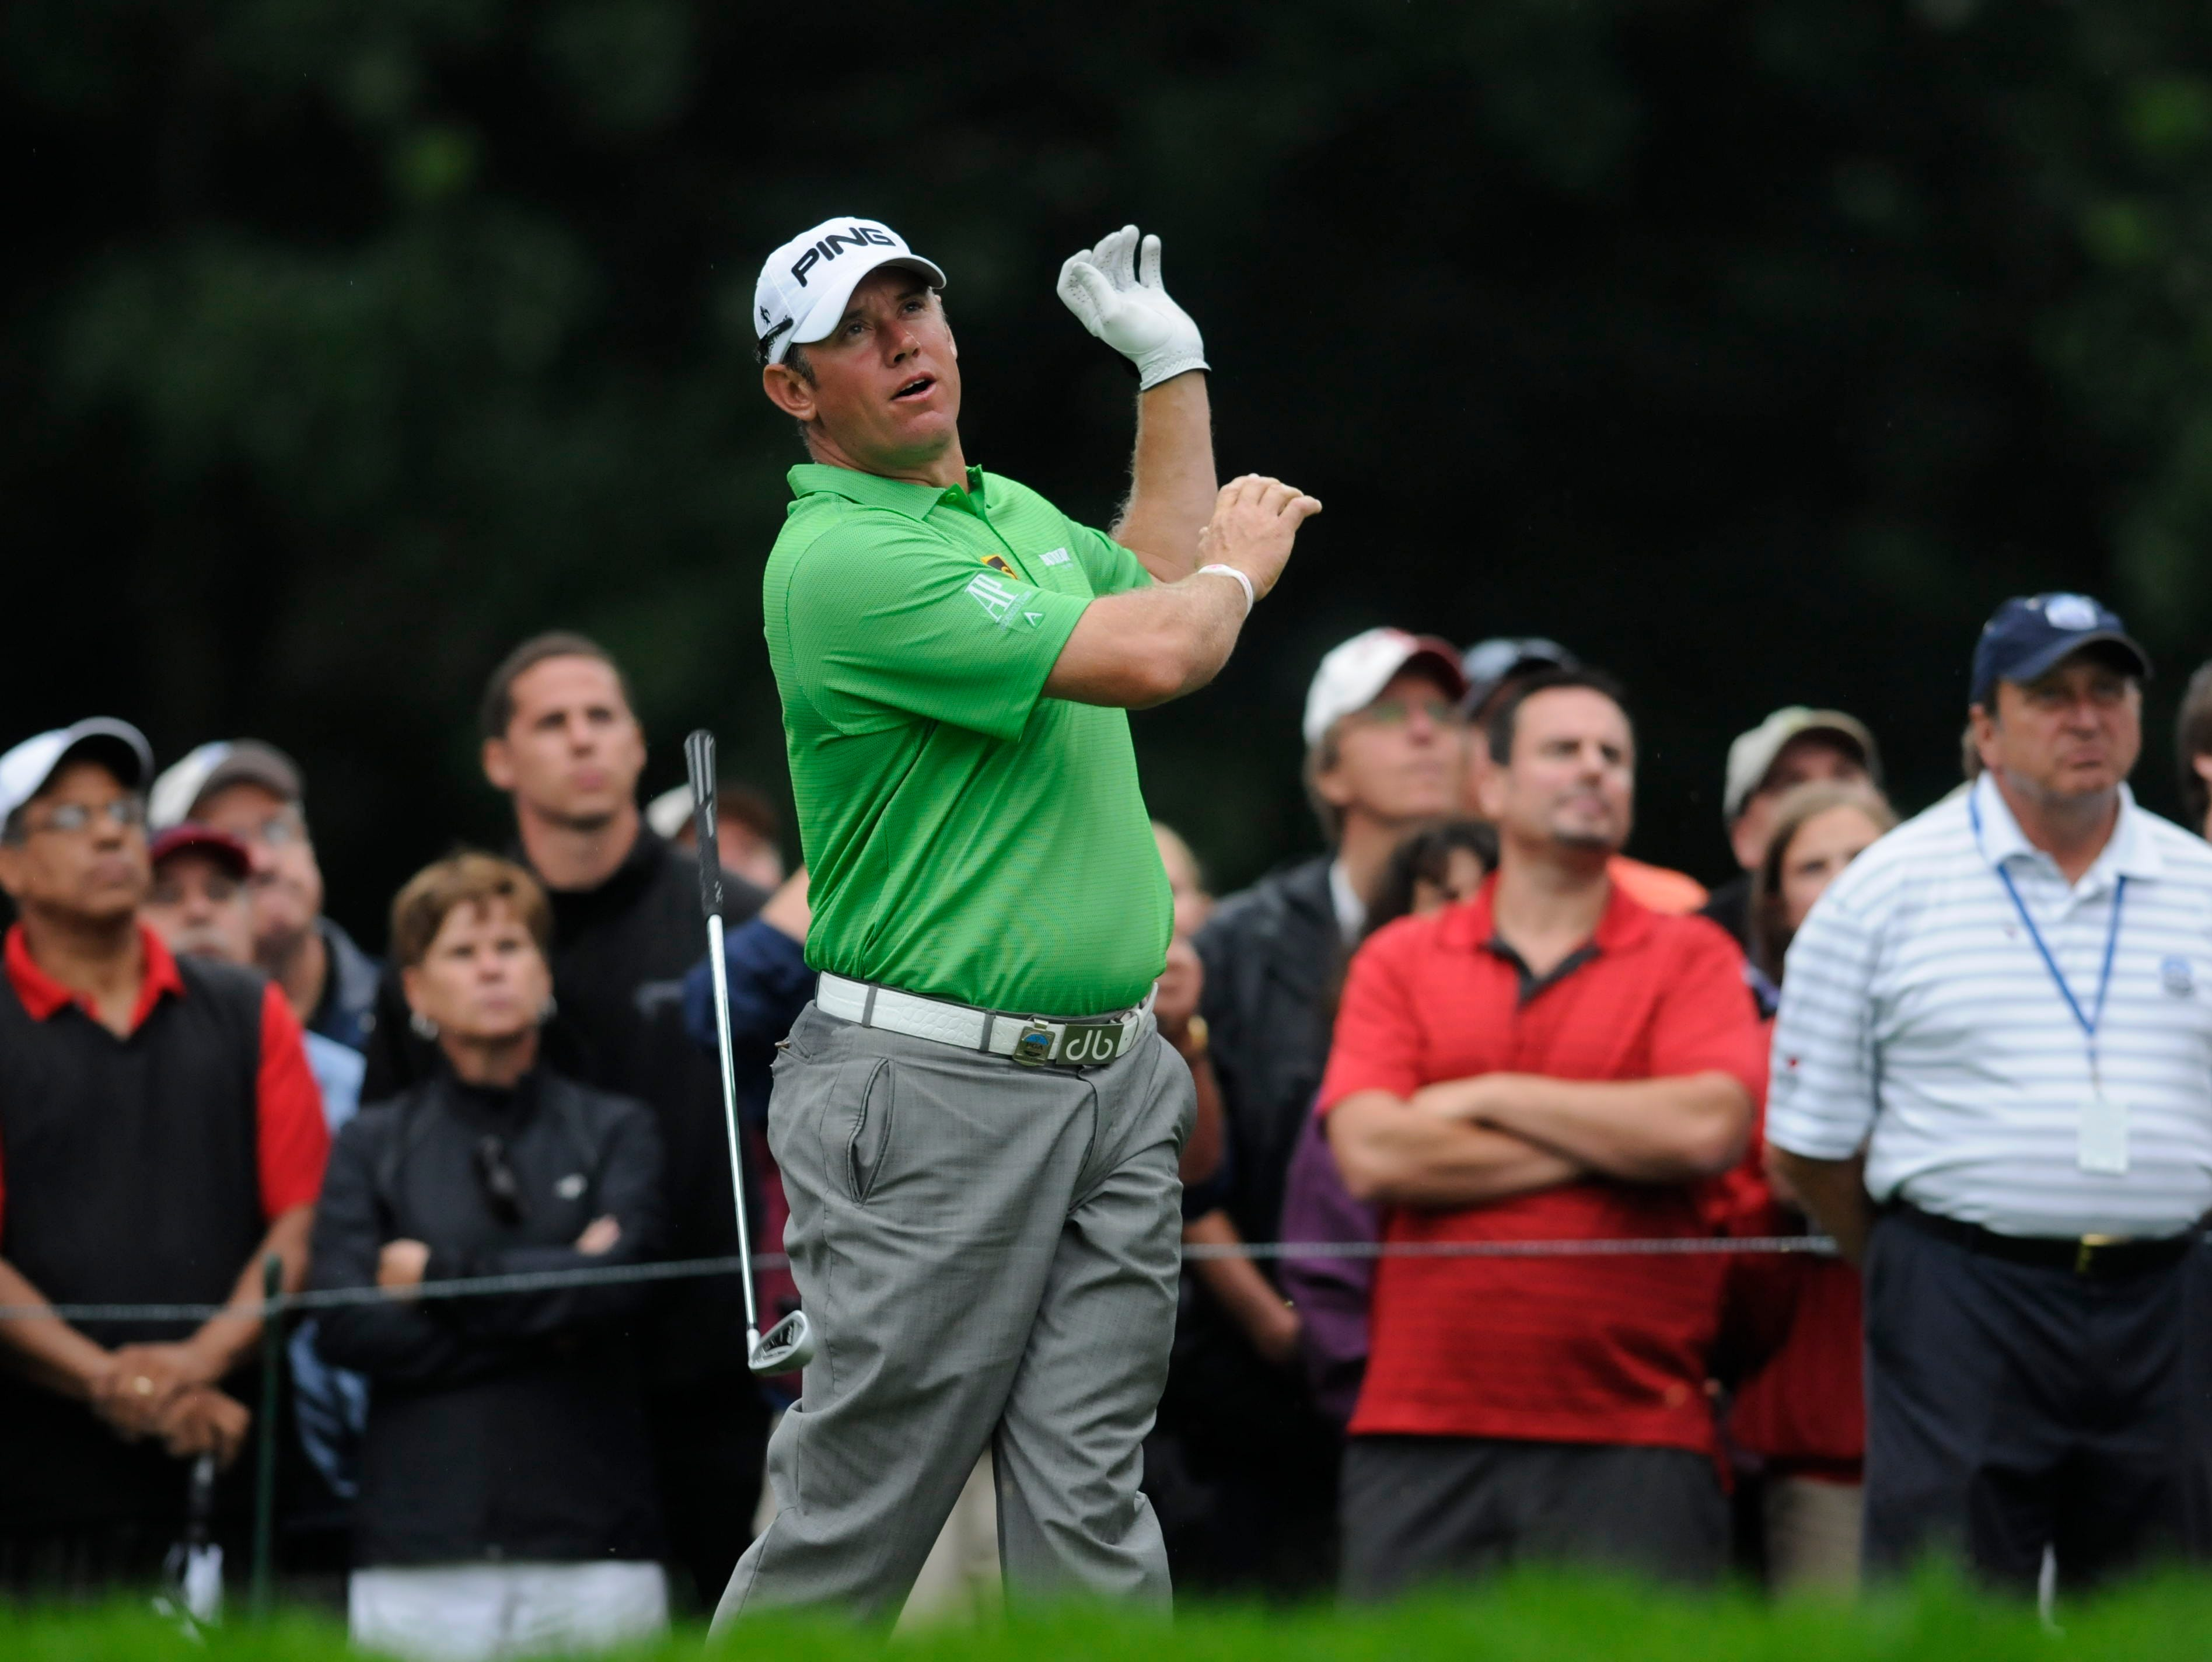 Lee Westwood drops his club after his tee shot on the 13th hole.